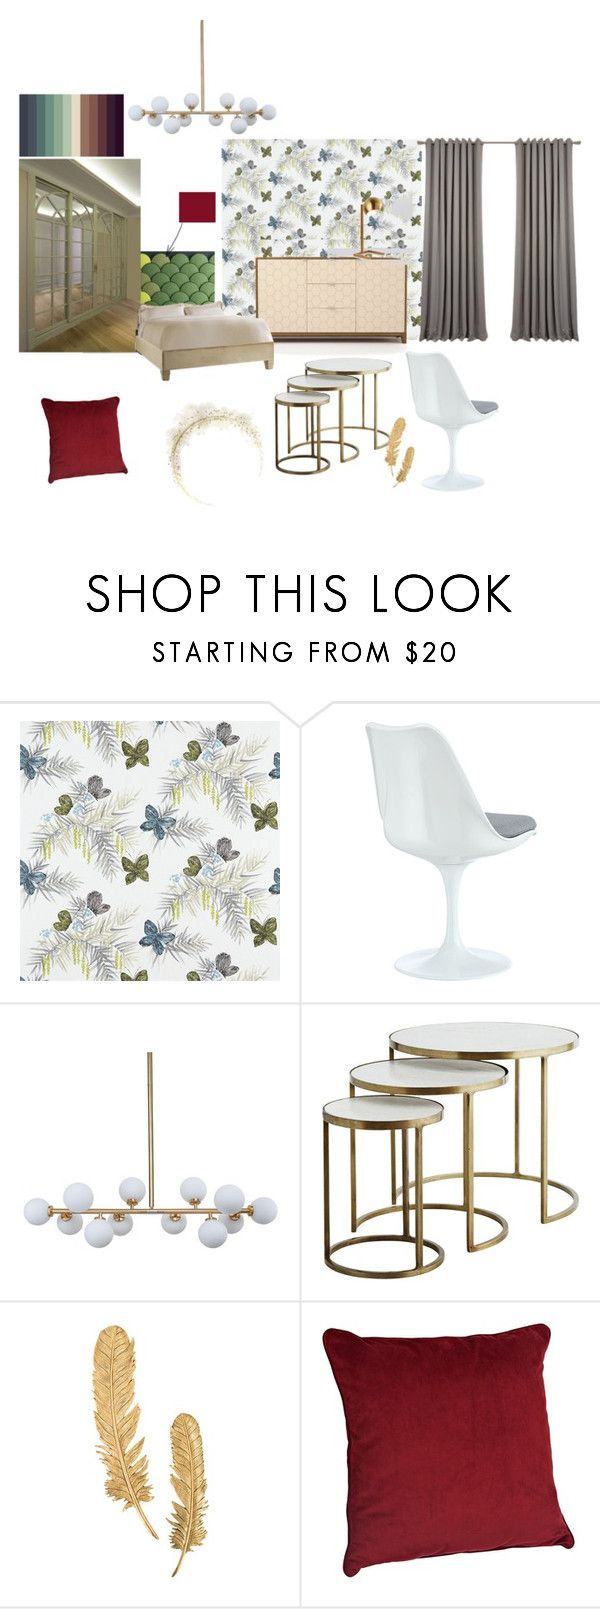 """girls room"" by mukhtarova-patimat on Polyvore featuring interior, interiors, interior design, дом, home decor, interior decorating и Hooker Furniture"